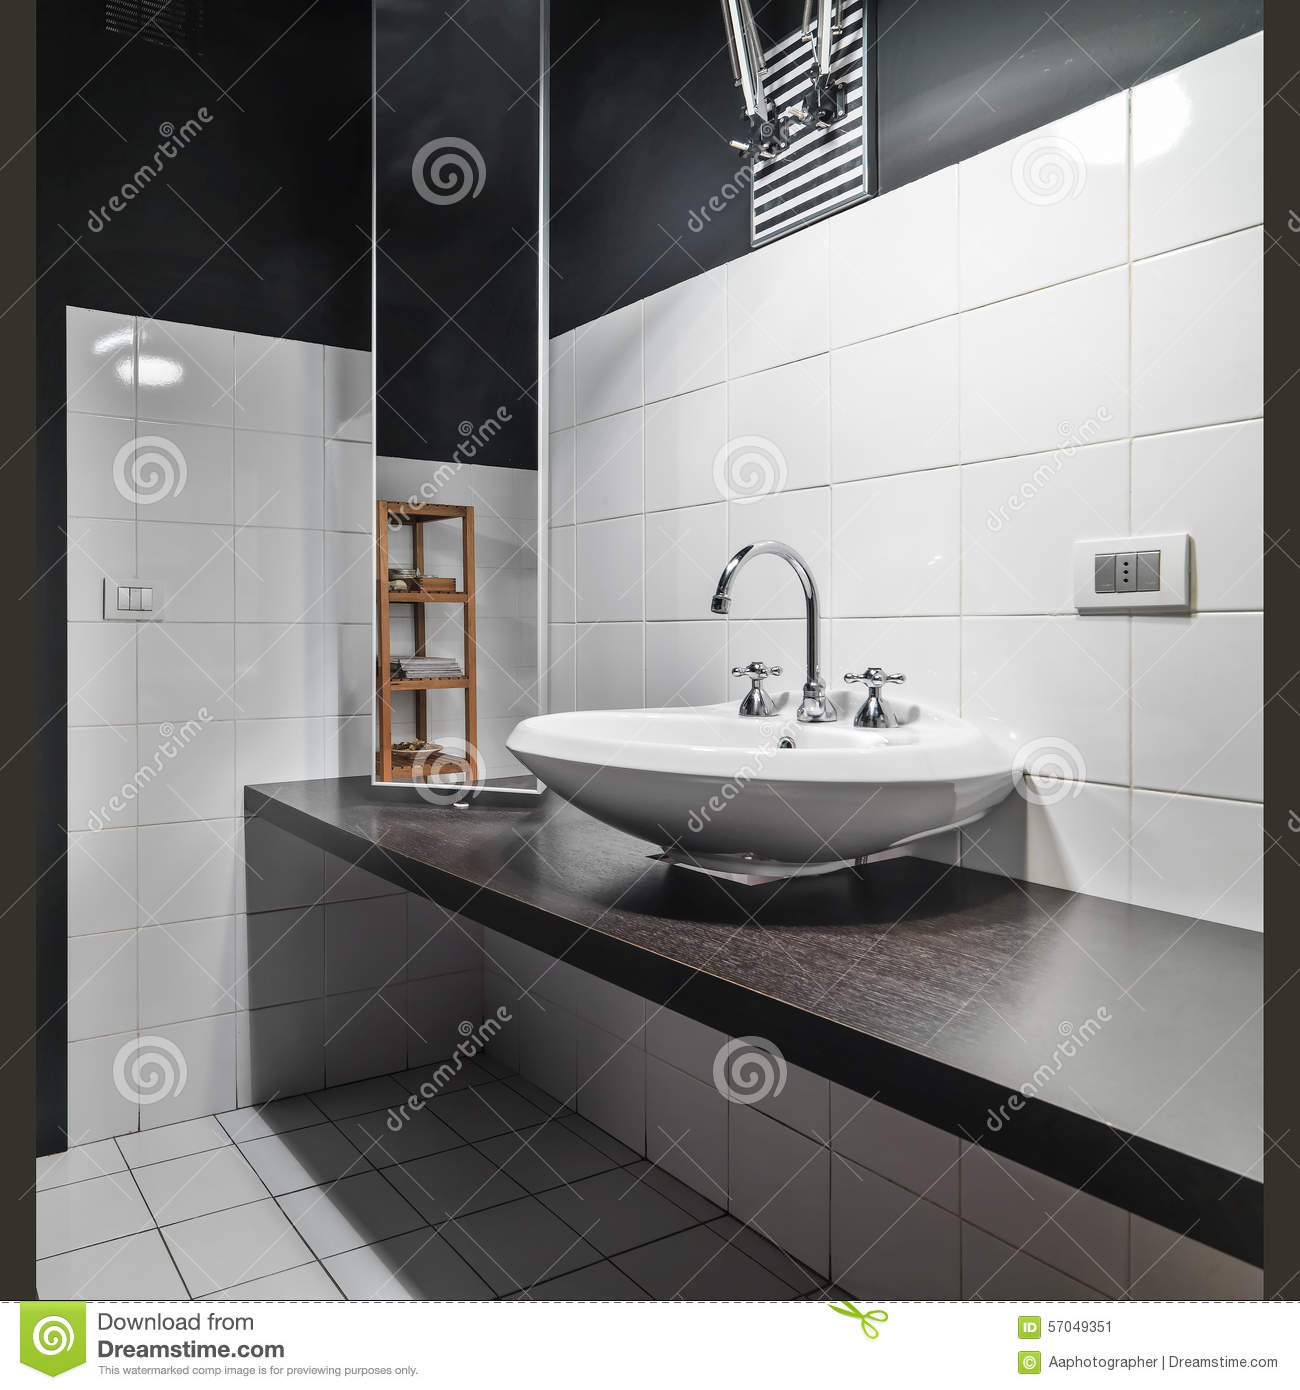 detail of counter top washbasin in a modetn bathroom stock image image 57049351. Black Bedroom Furniture Sets. Home Design Ideas